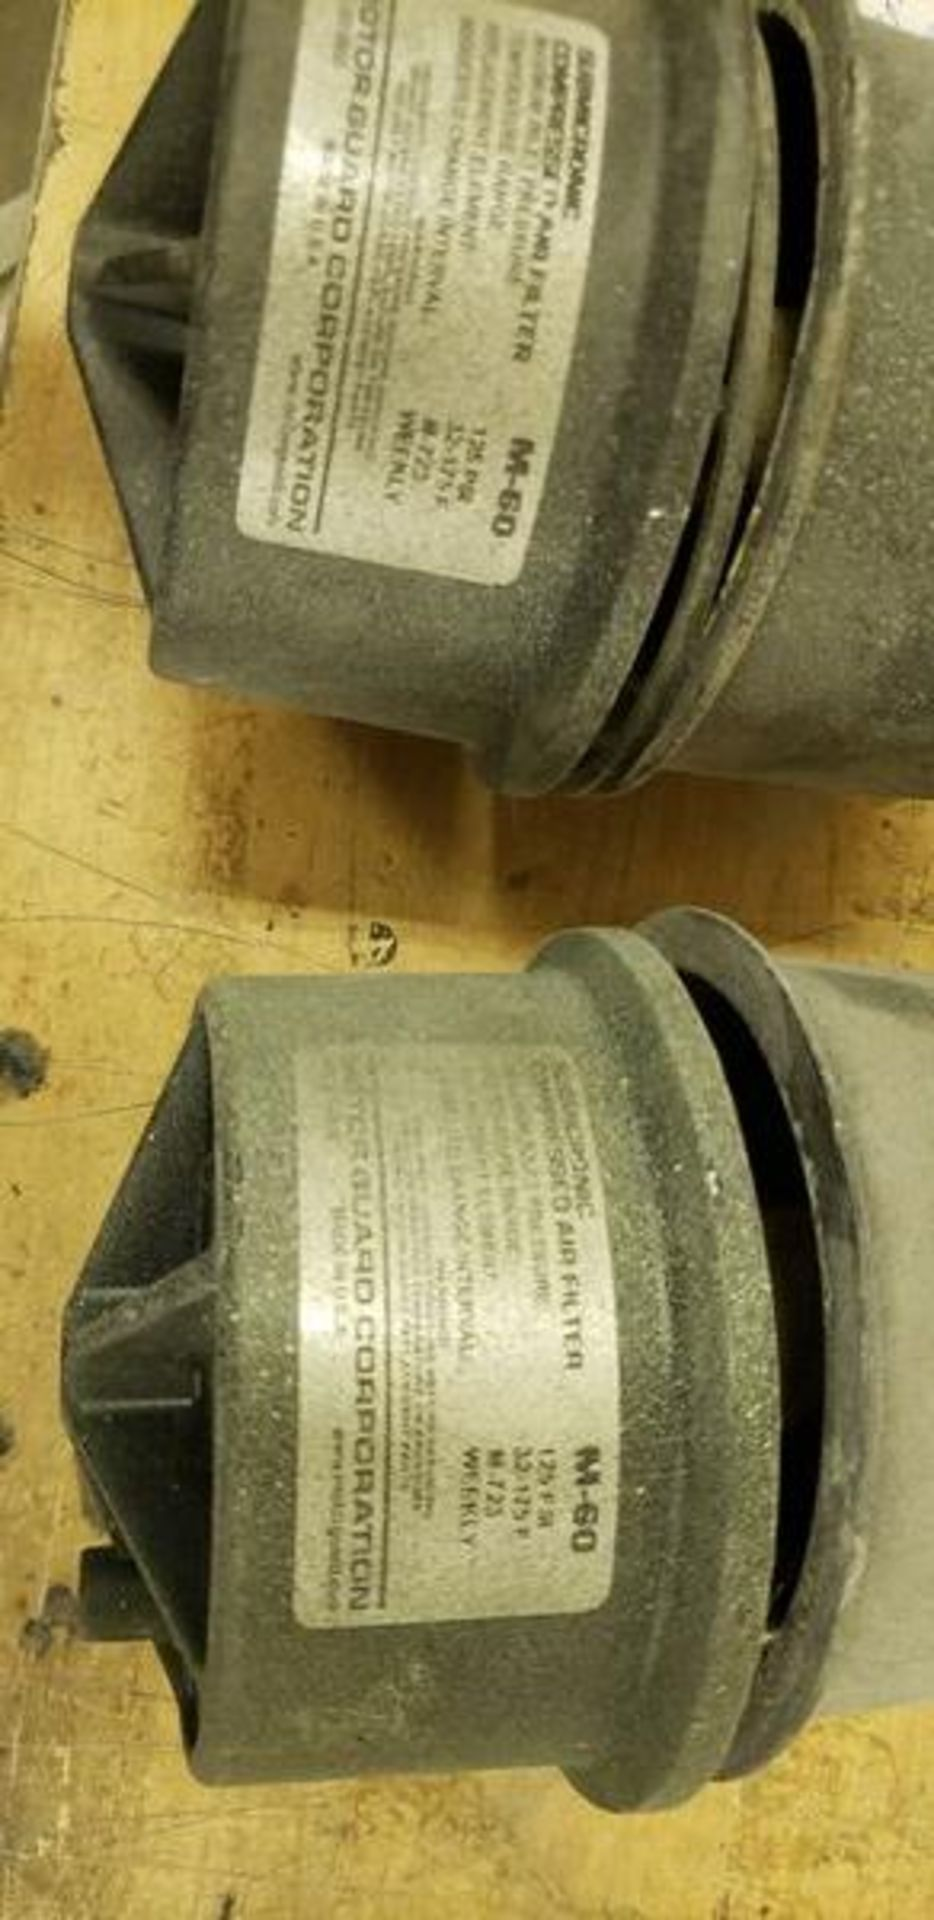 SUBMICRONIC COMPRESSED AIR FILTER M-60 - Image 3 of 3